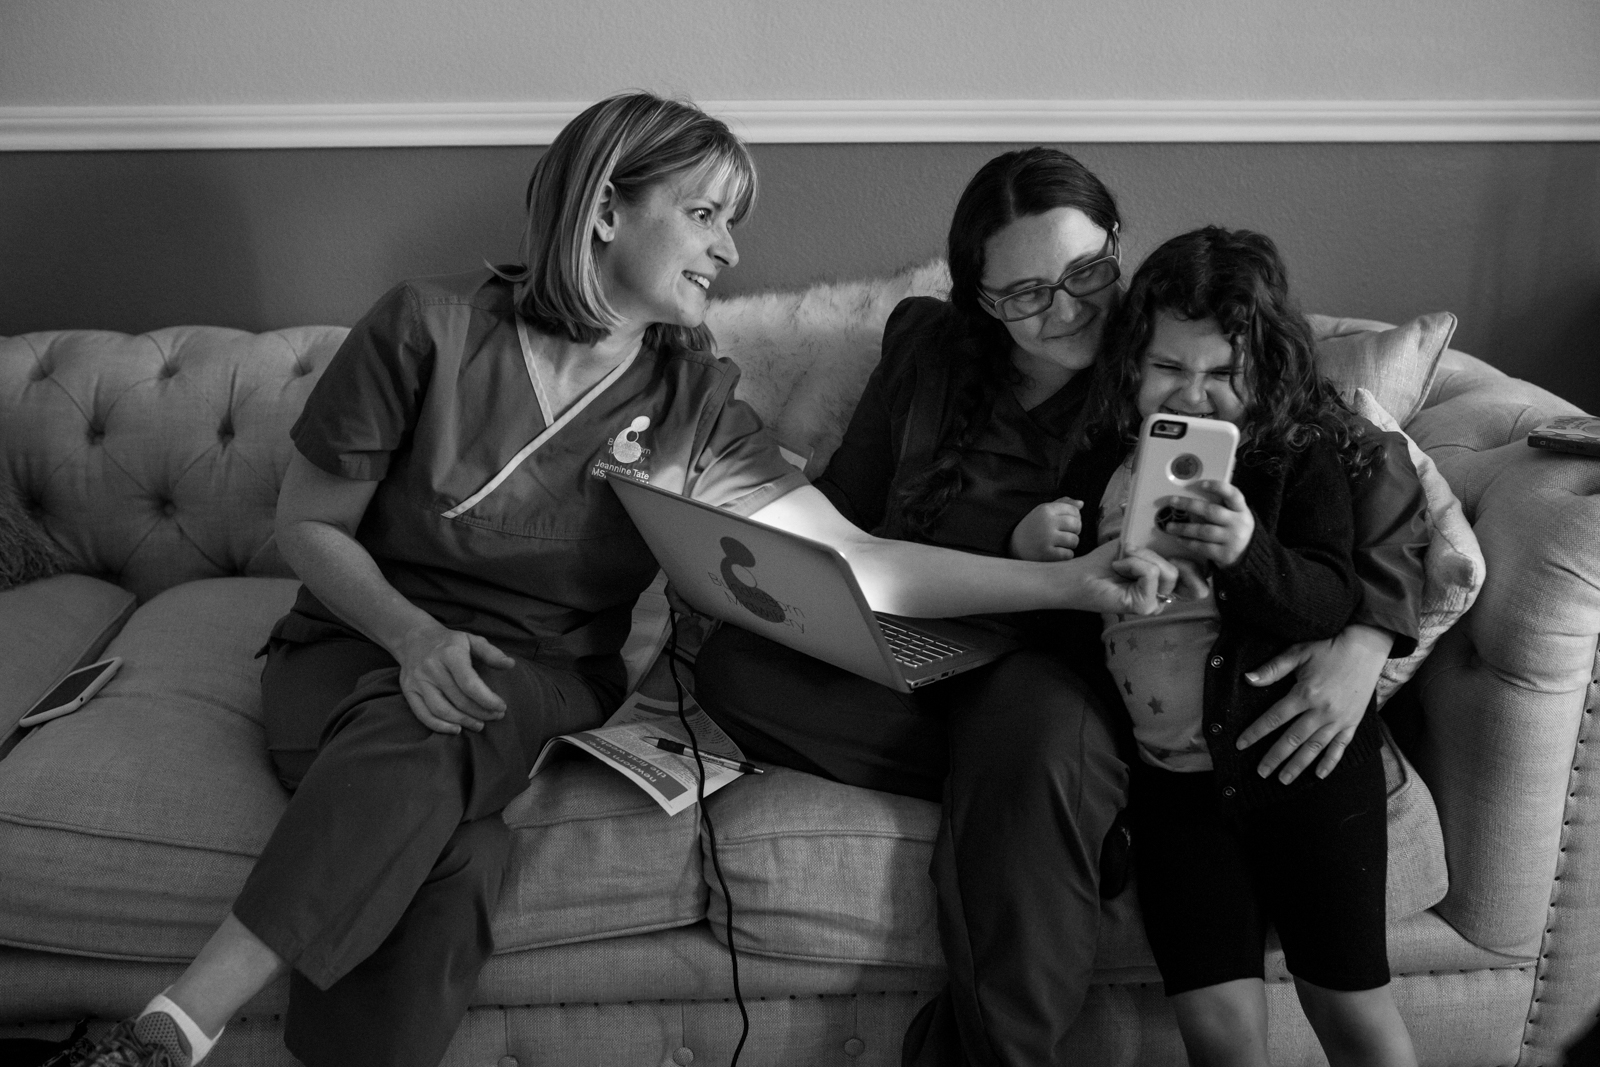 Lawren Rose Photography captures a moment between a little girl and a midwife taking a selfie just after a home birth